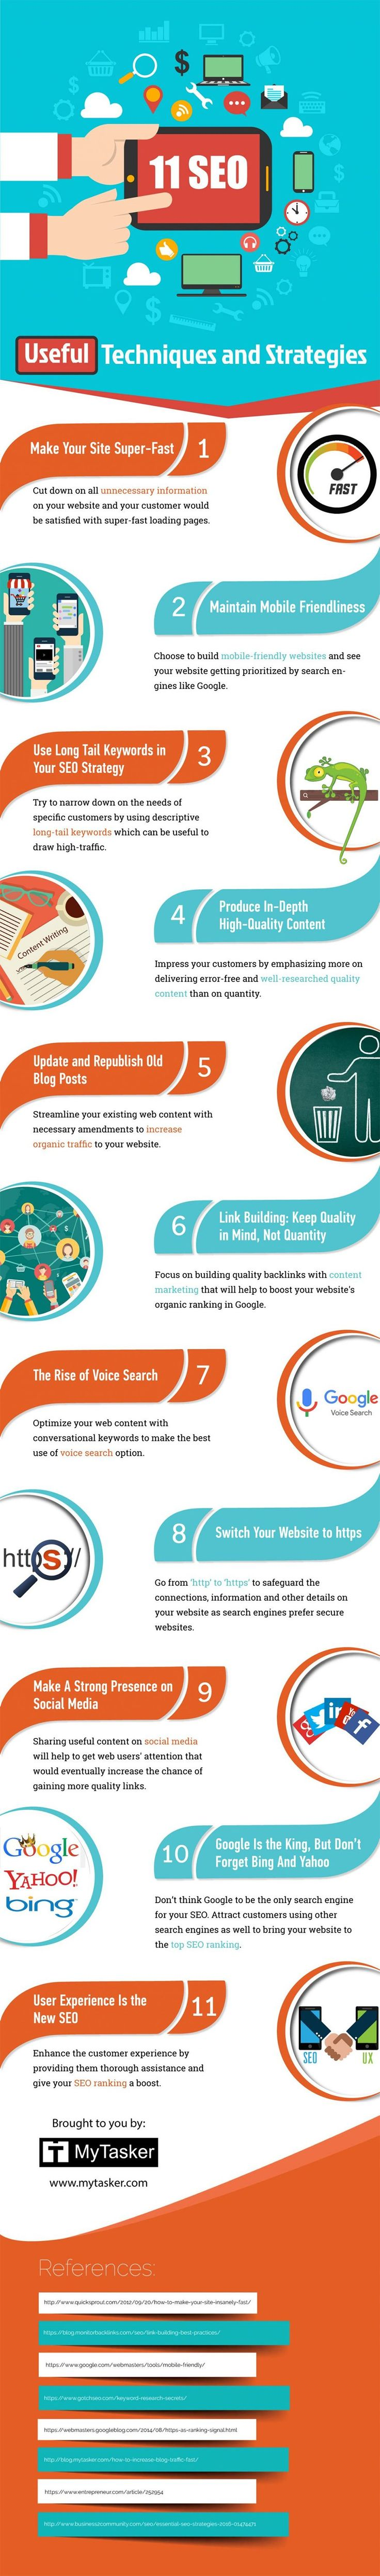 11 SEO Techniques You Can Implement to Rank Higher on Google [Infographic] | #SEO #optimization